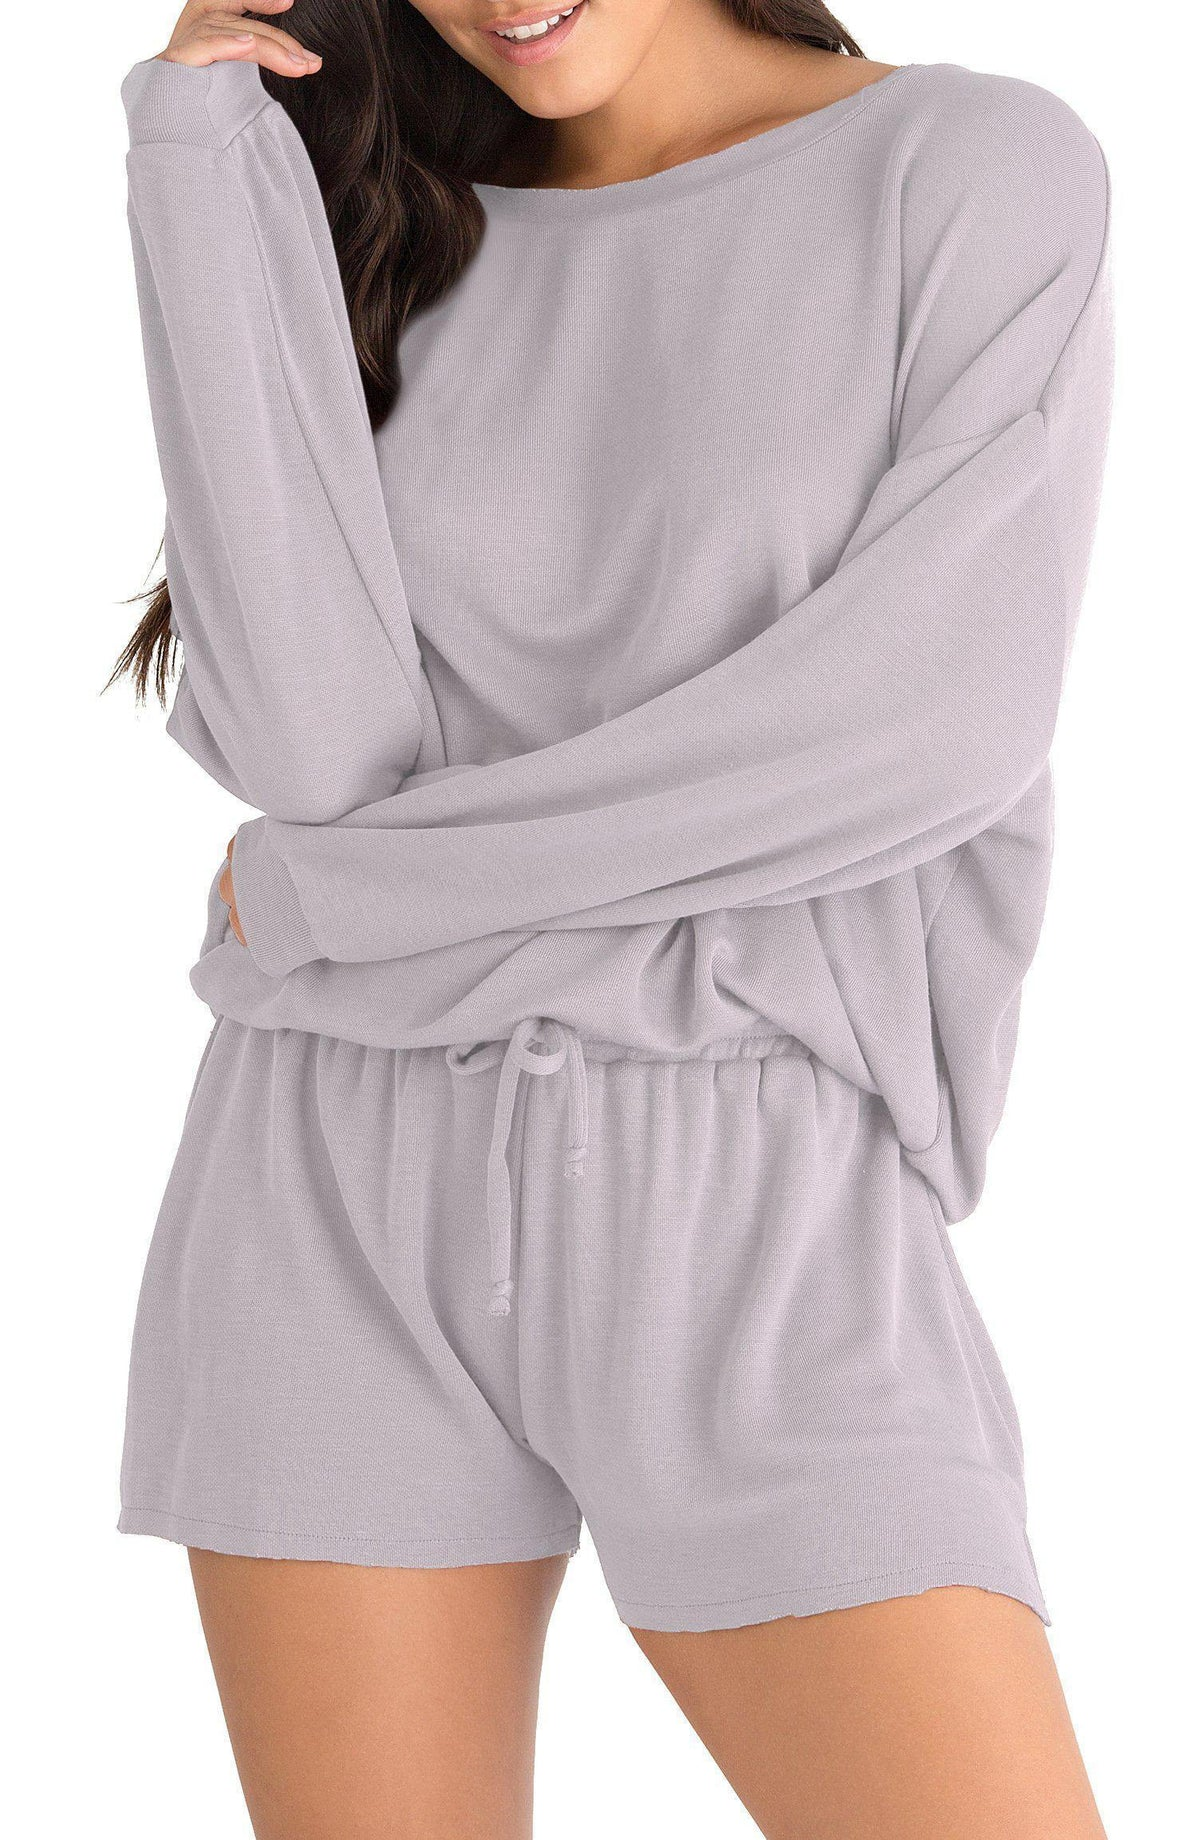 Fall Forever Lounge Short-Loungewear-Honeydew Intimates-Orchid Tint-Small-Honeydew Intimates